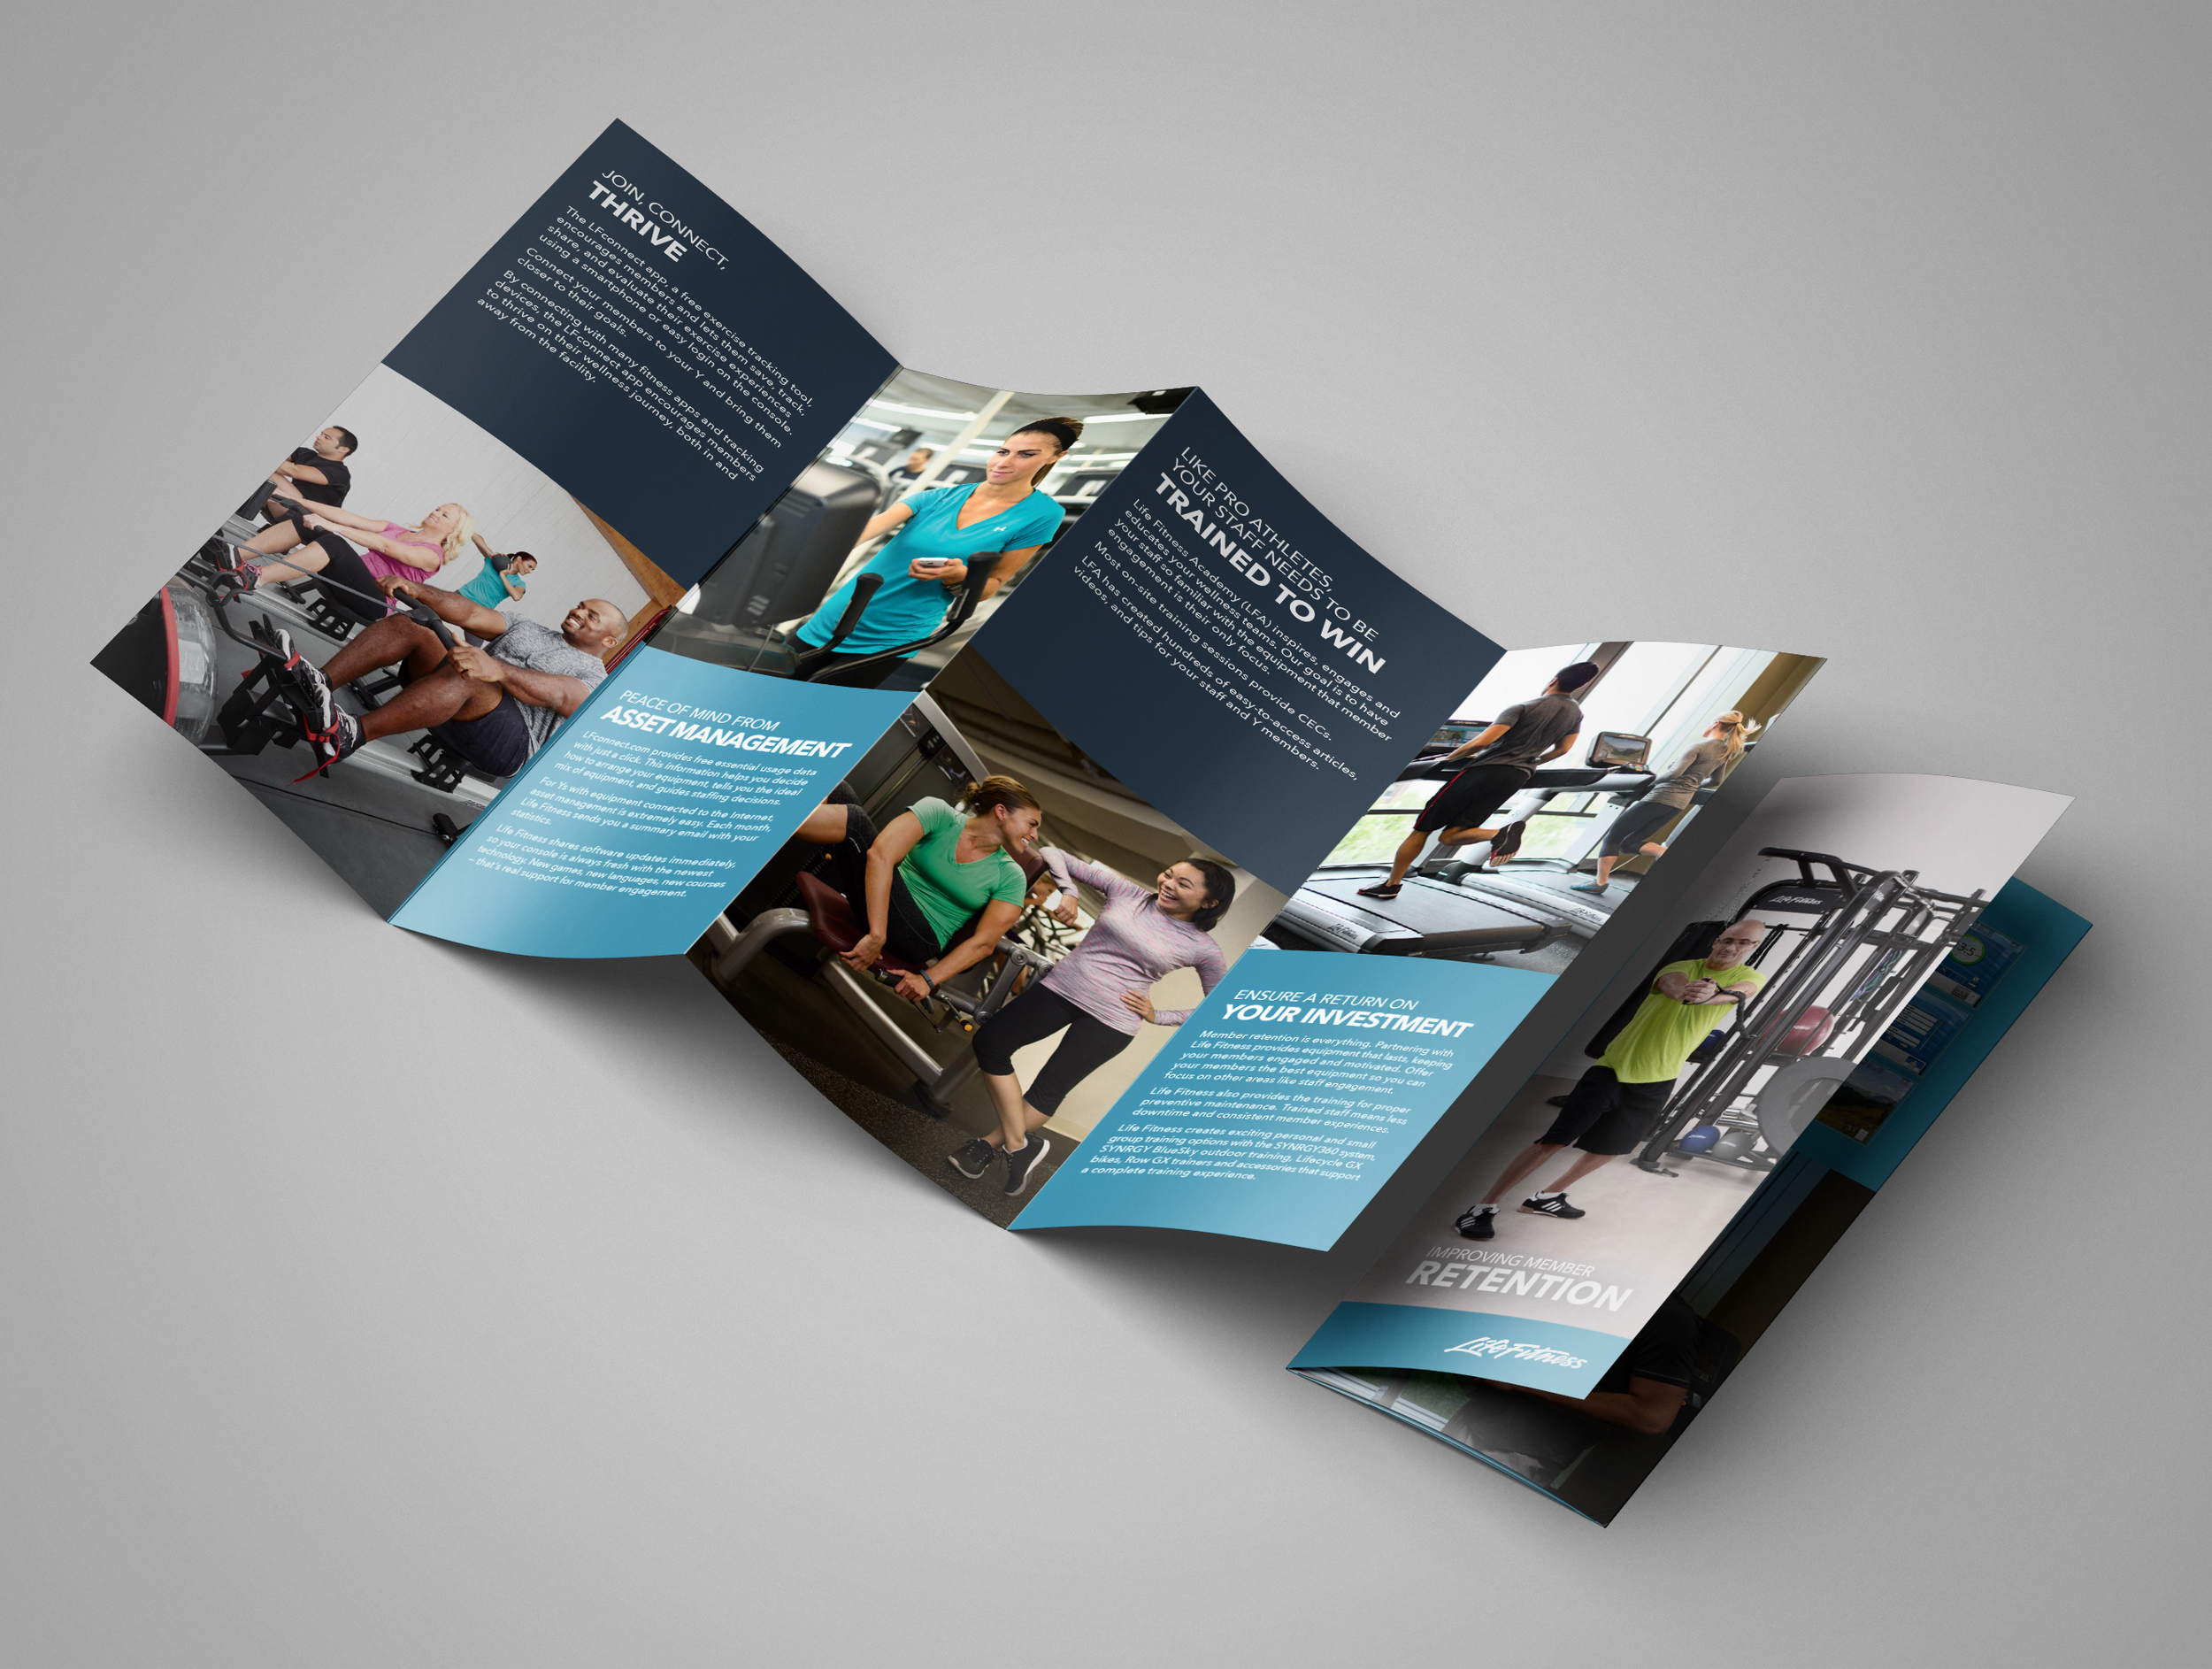 Member Retention Brochure  | 8-panel resource brochure for current patrons. | Client:  Life Fitness  | December 2015